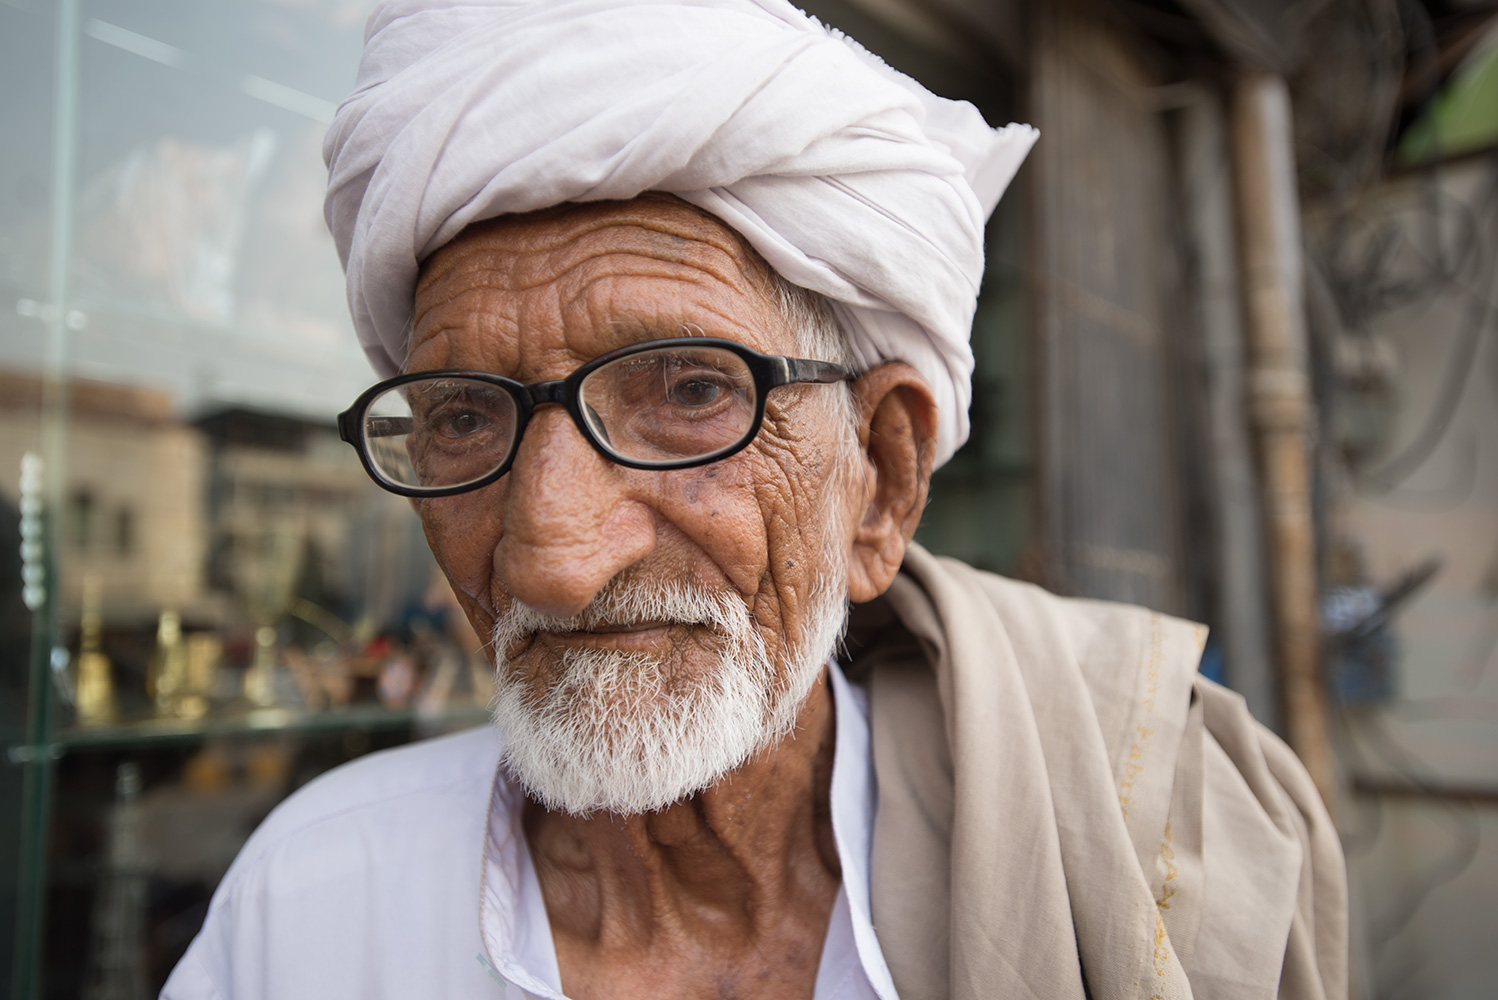 An almost blind man I met in Saddar Bazaar. His handshake was firm!